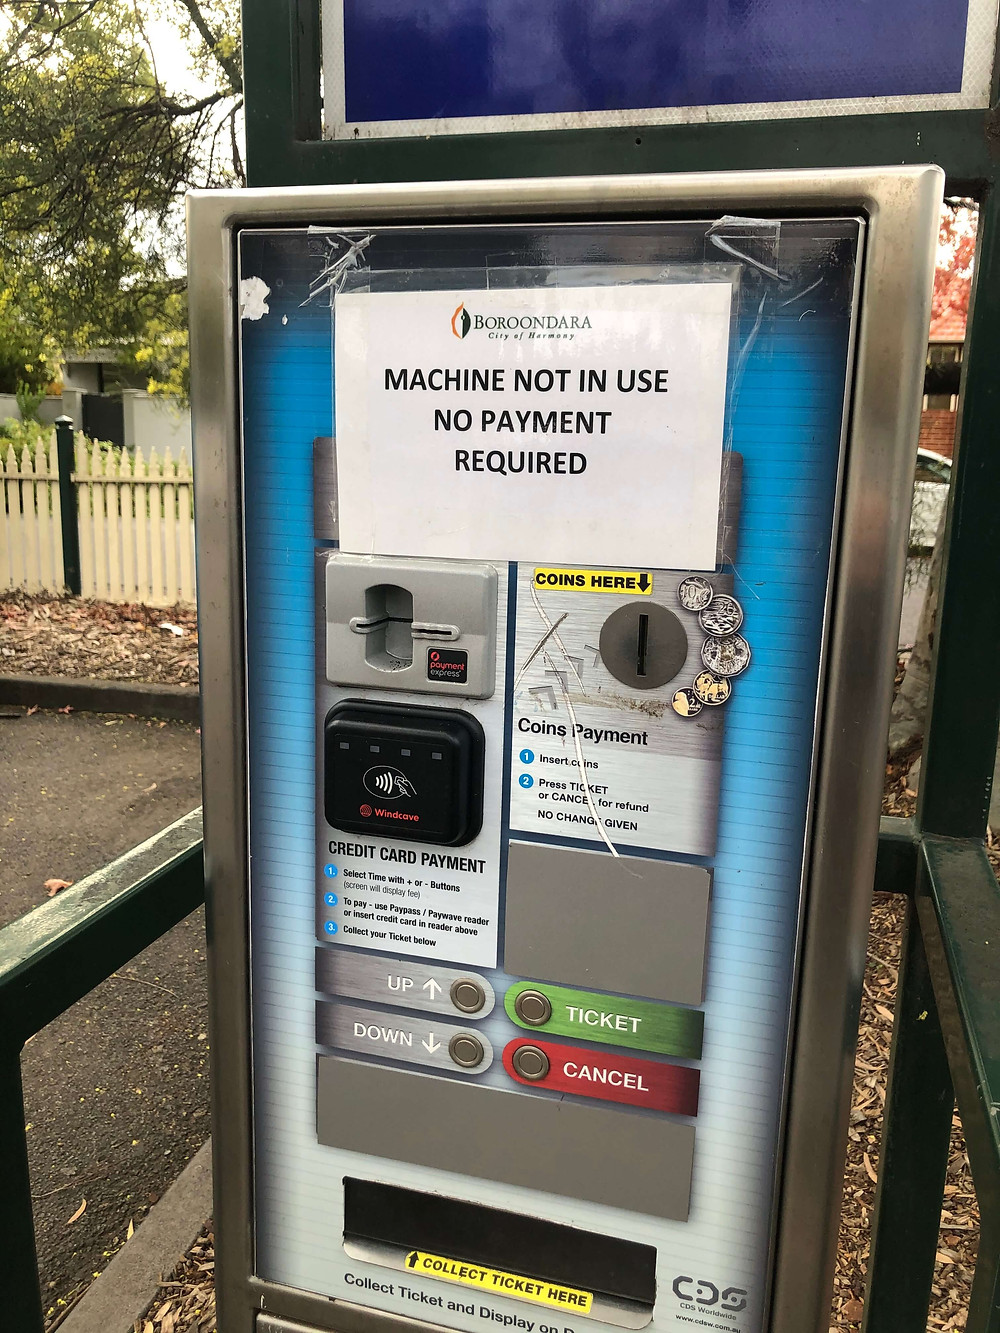 Ticket parking machine out of service until September 2020.